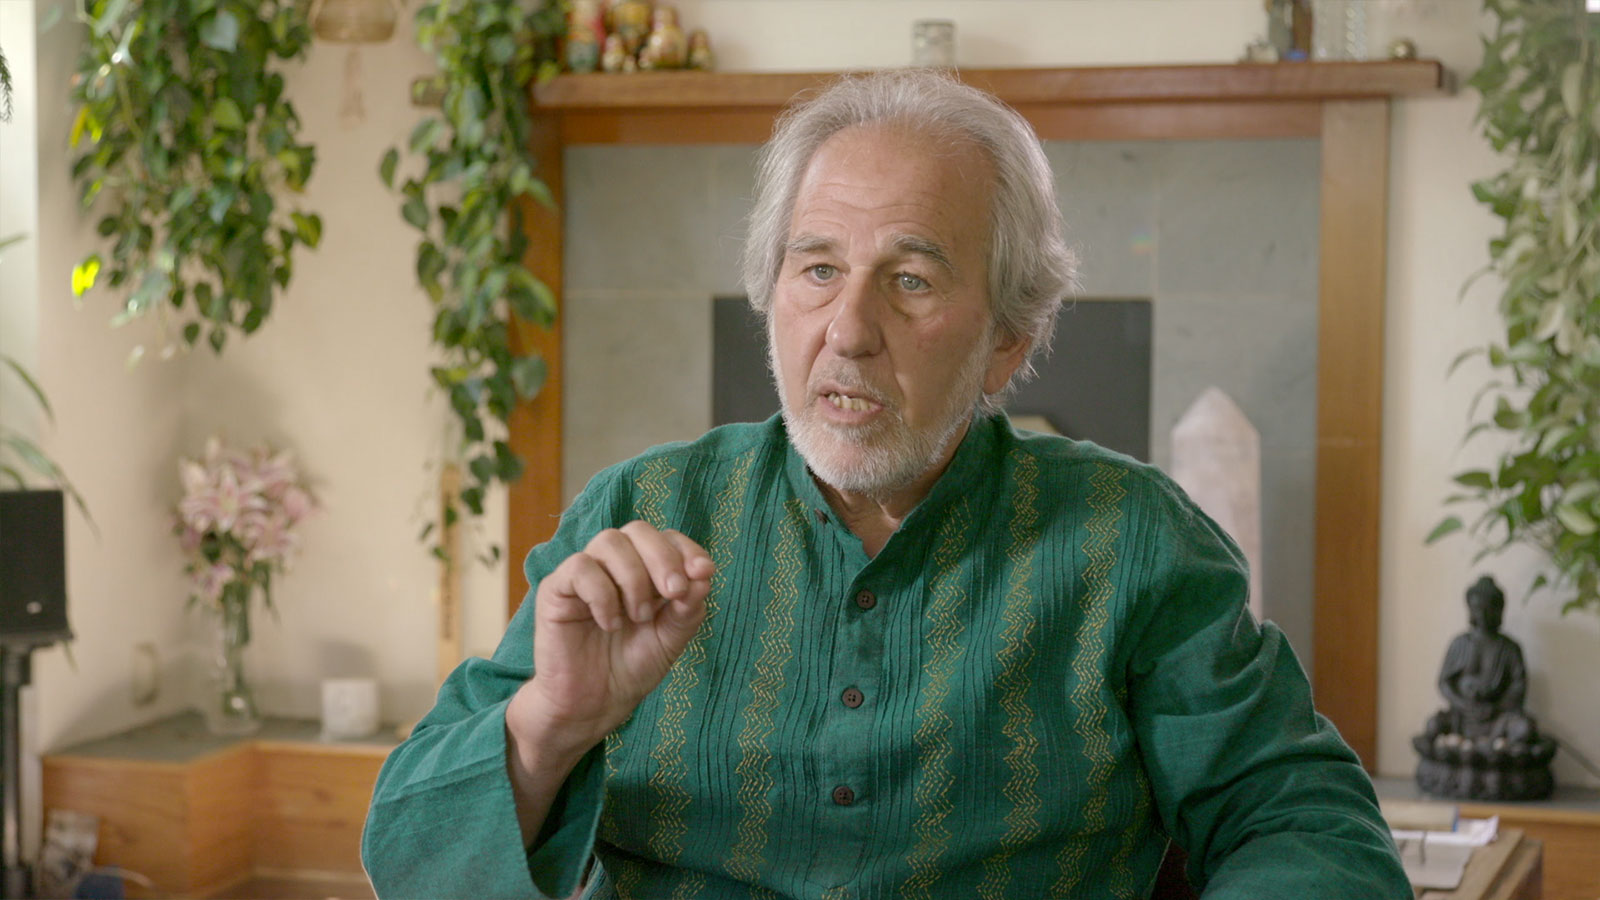 Bruce Lipton mind body science and spiritual leader